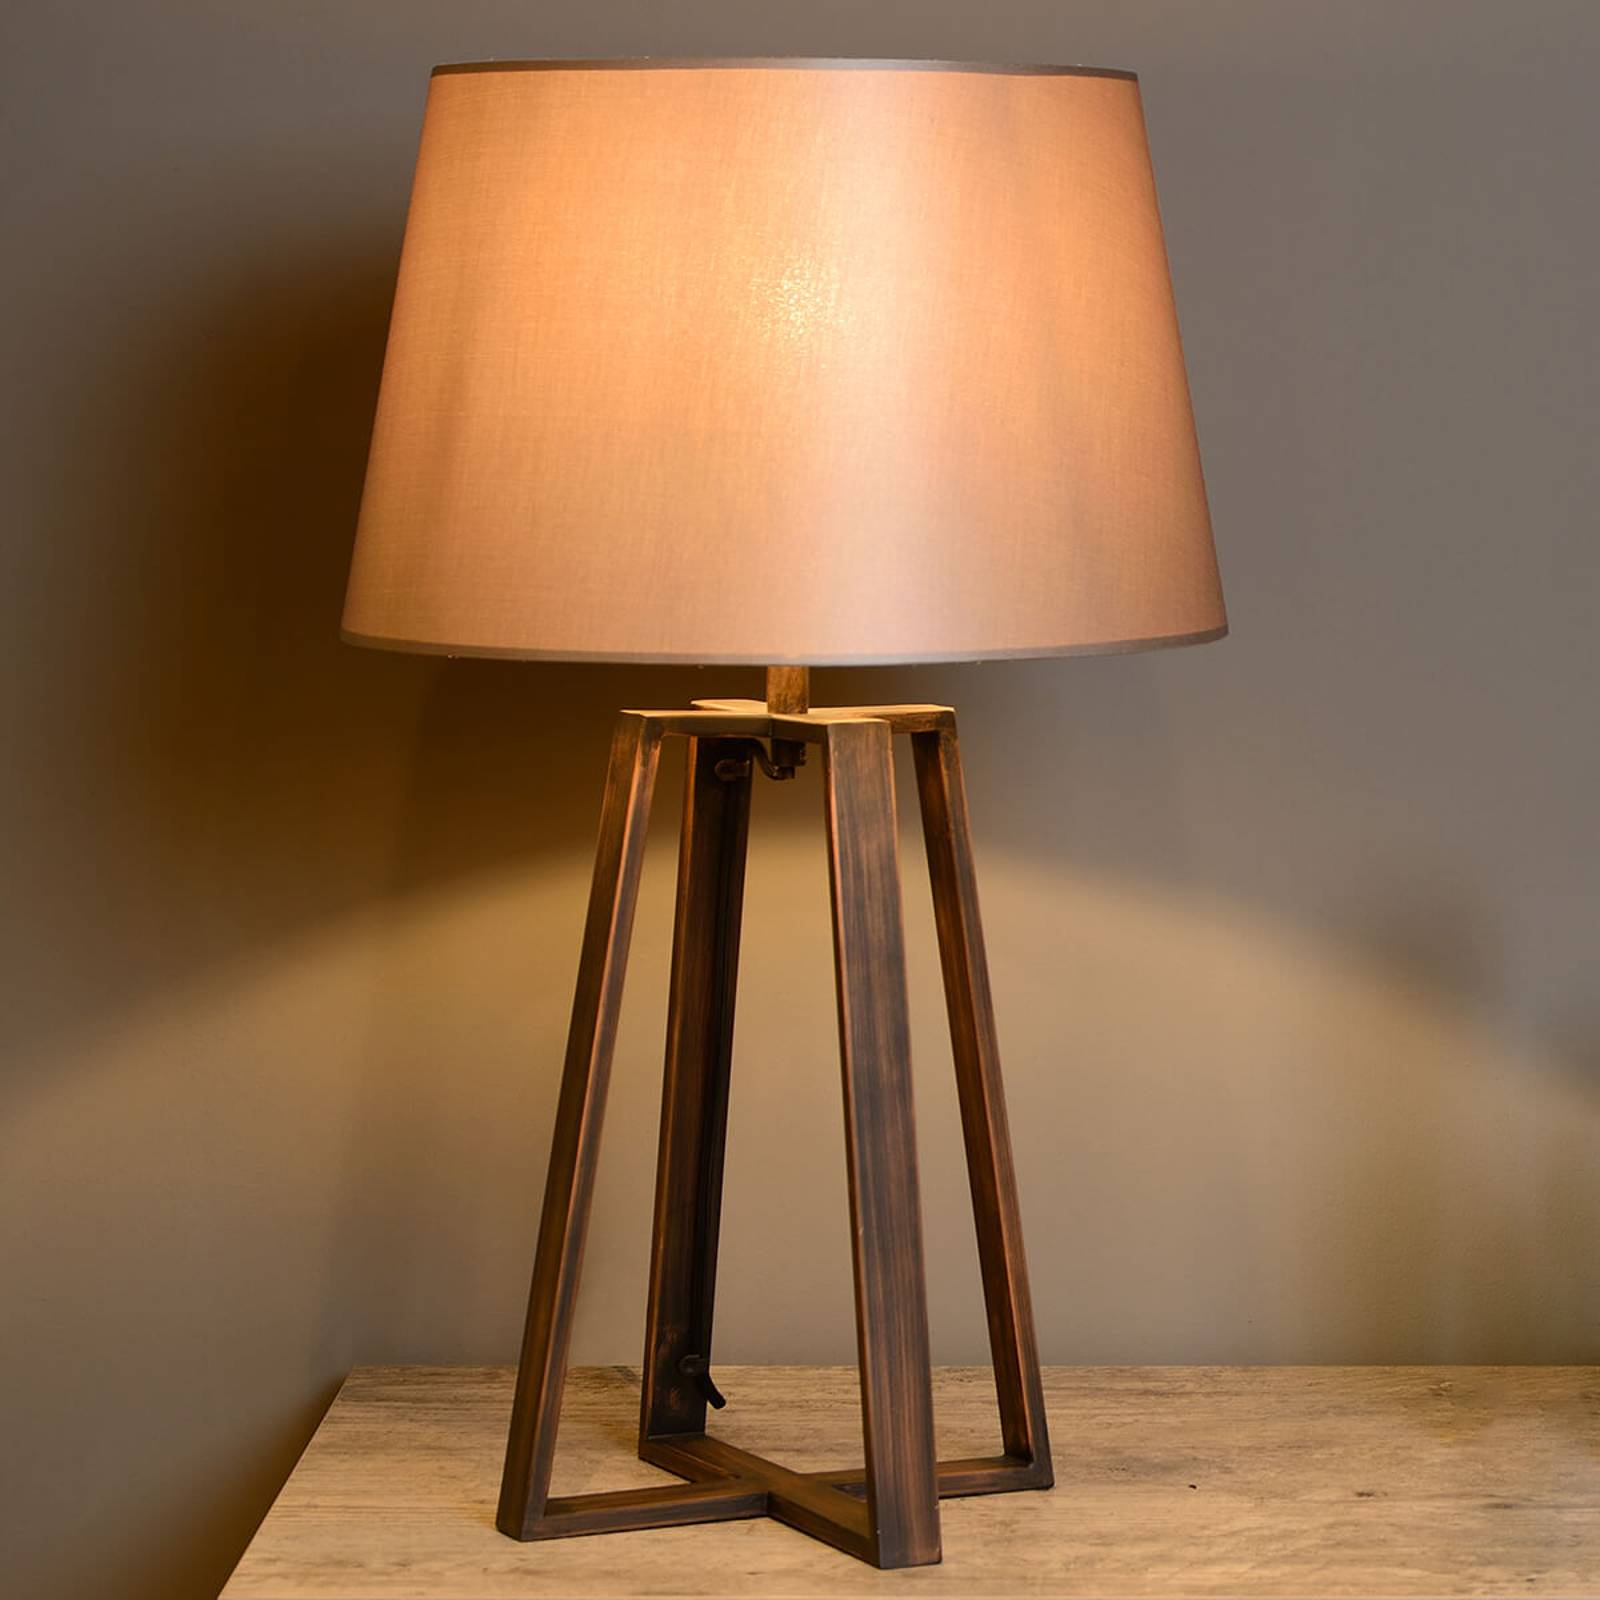 Coffee Lamp table lamp with brown fabric shade from LUCIDE